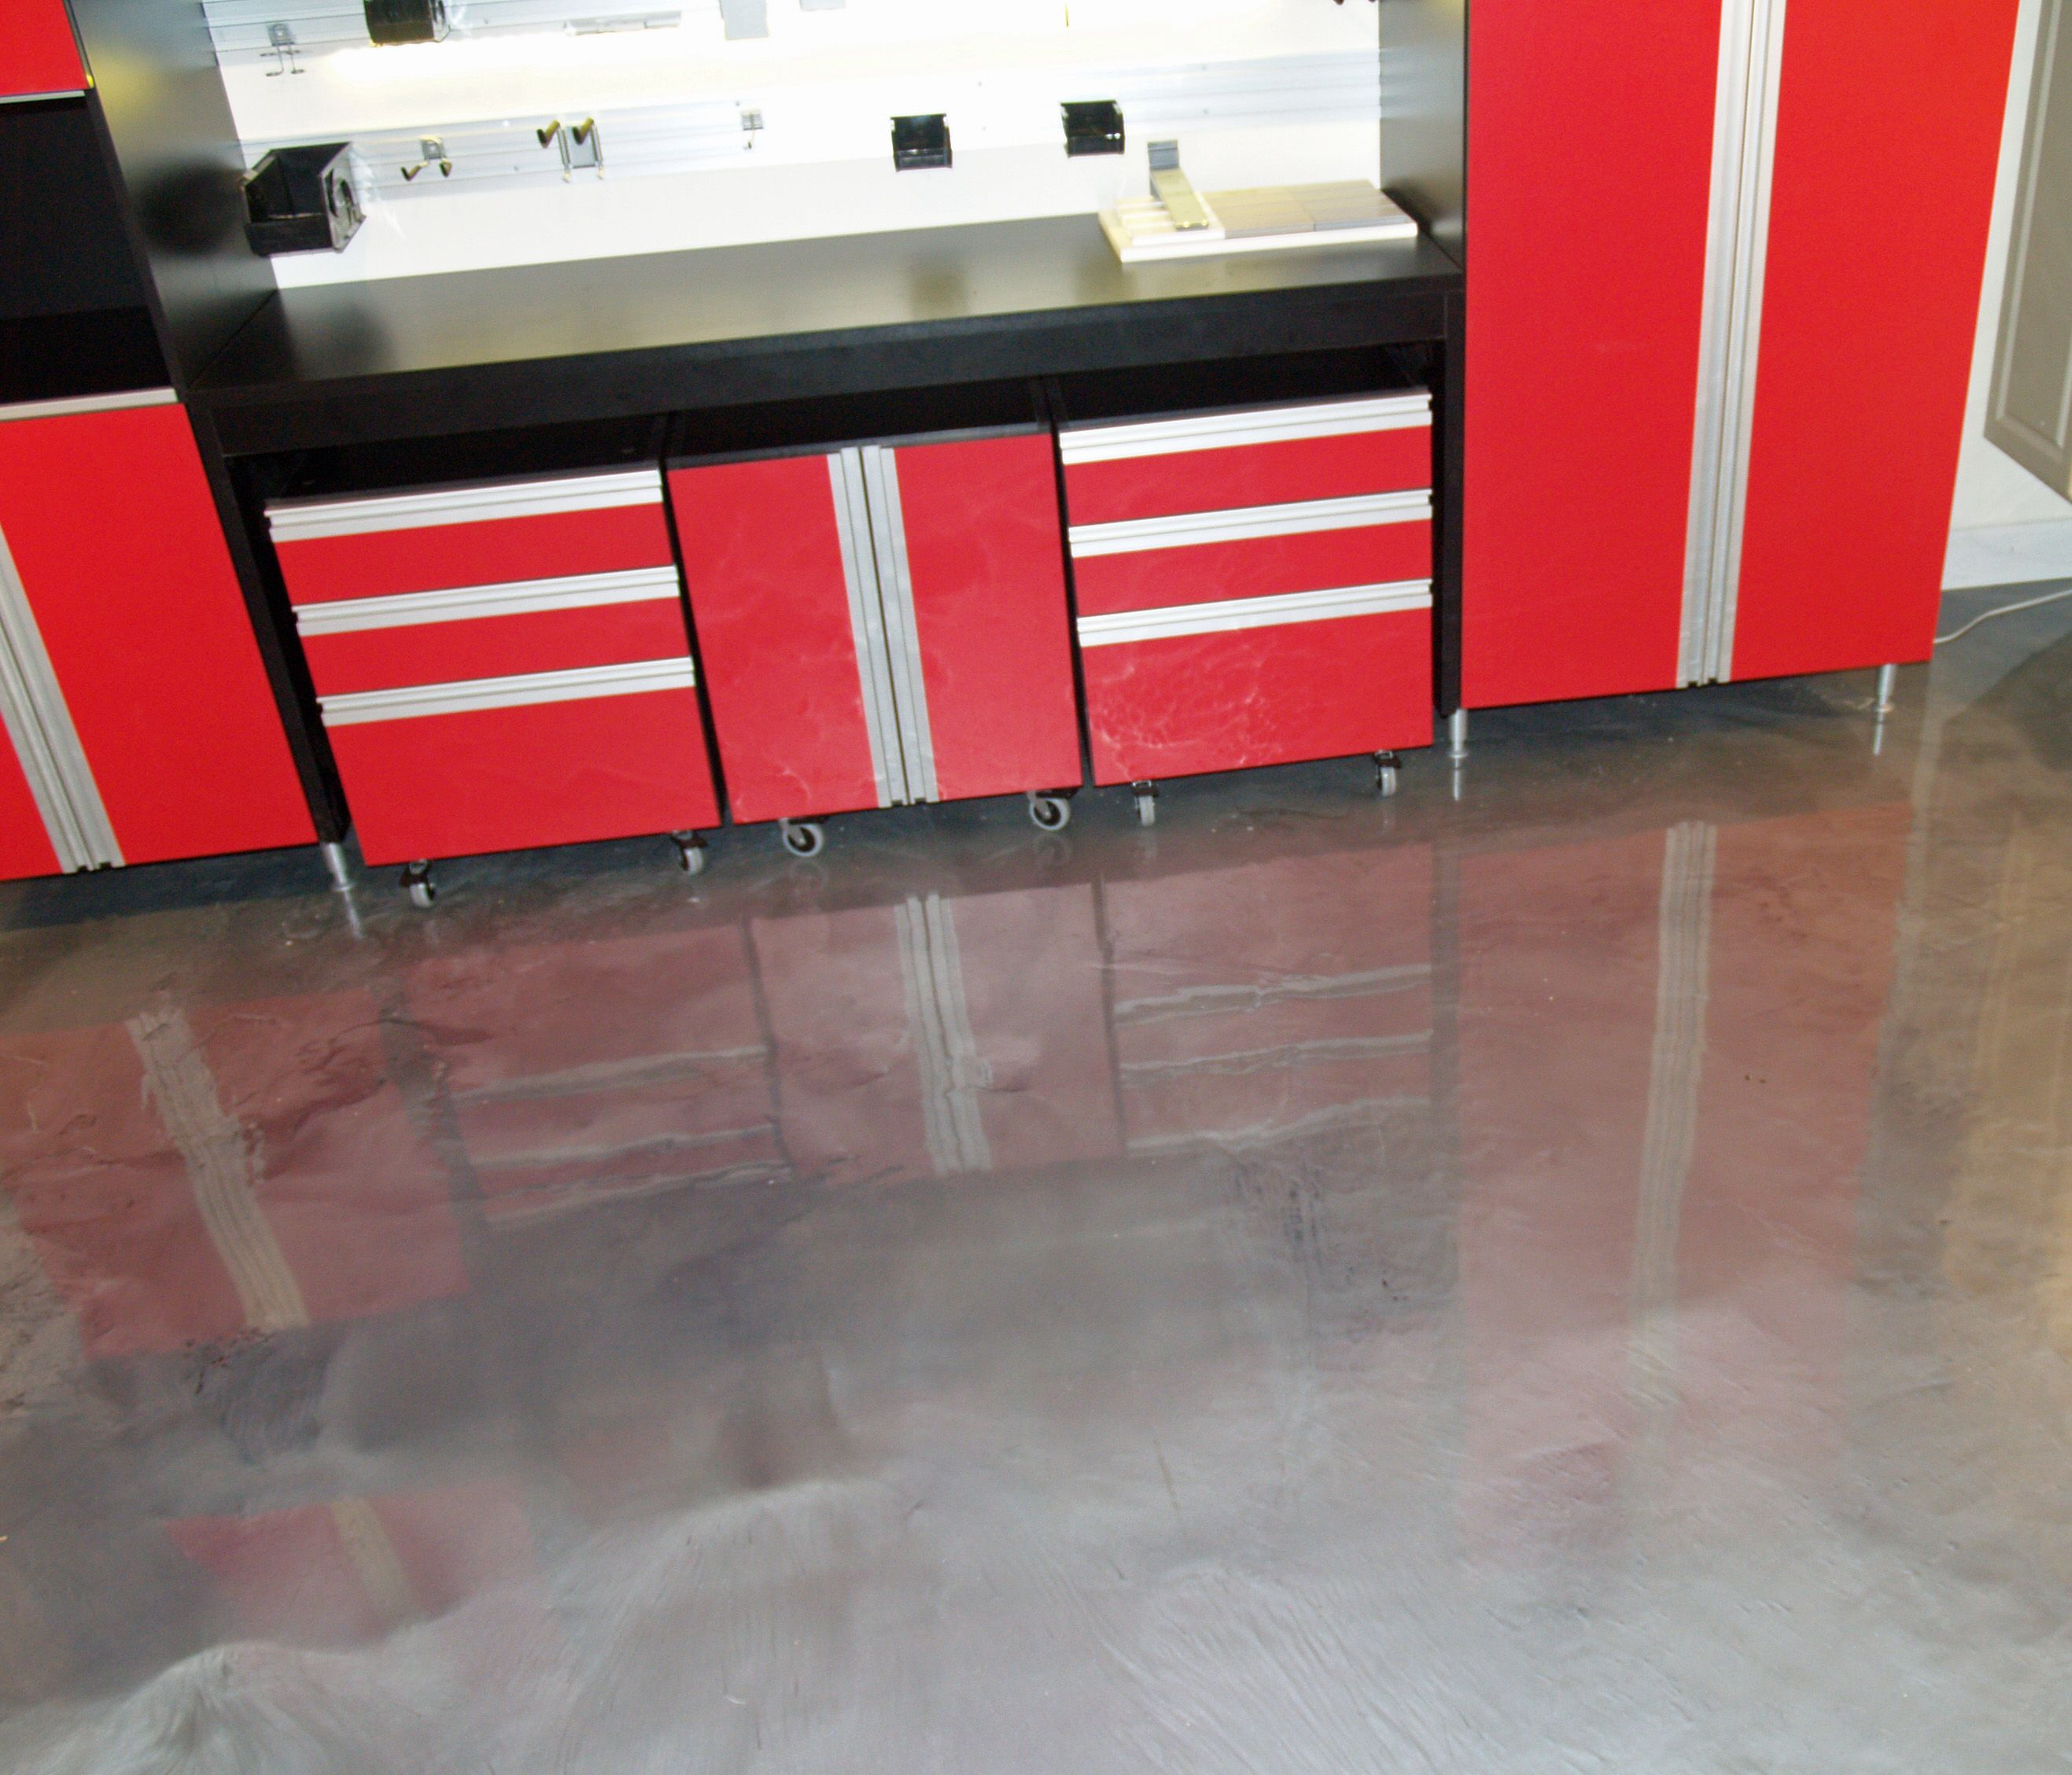 Metallic epoxy floor coatings are a hot new trend that is slowly